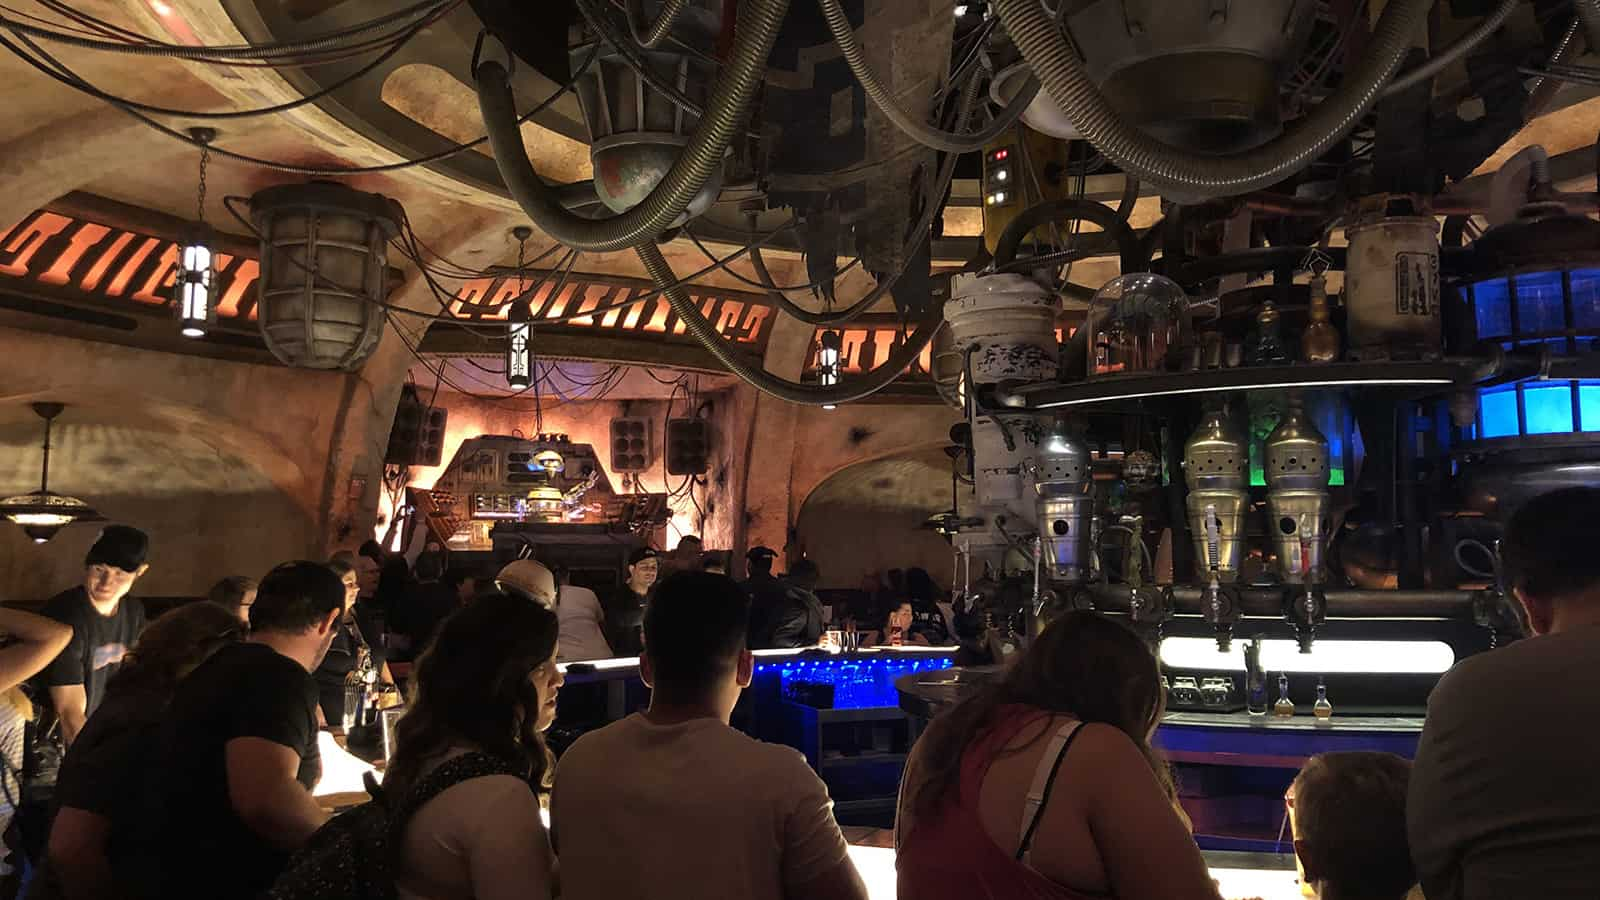 Oga S Cantina In Star Wars Land Worth The Hype Bigcrazylife